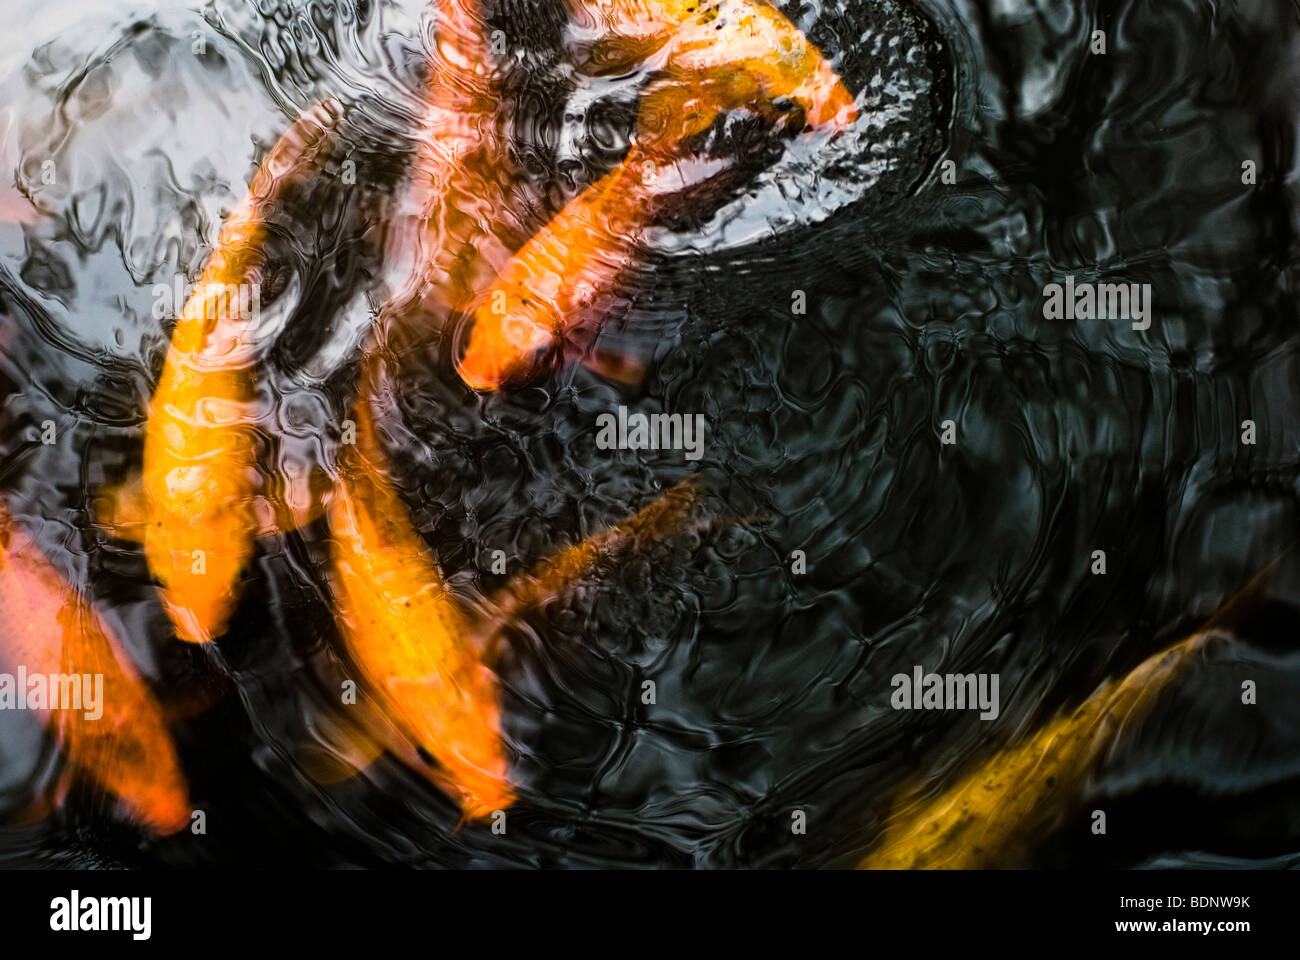 Golden Koi carp swimming in a pond - Stock Image